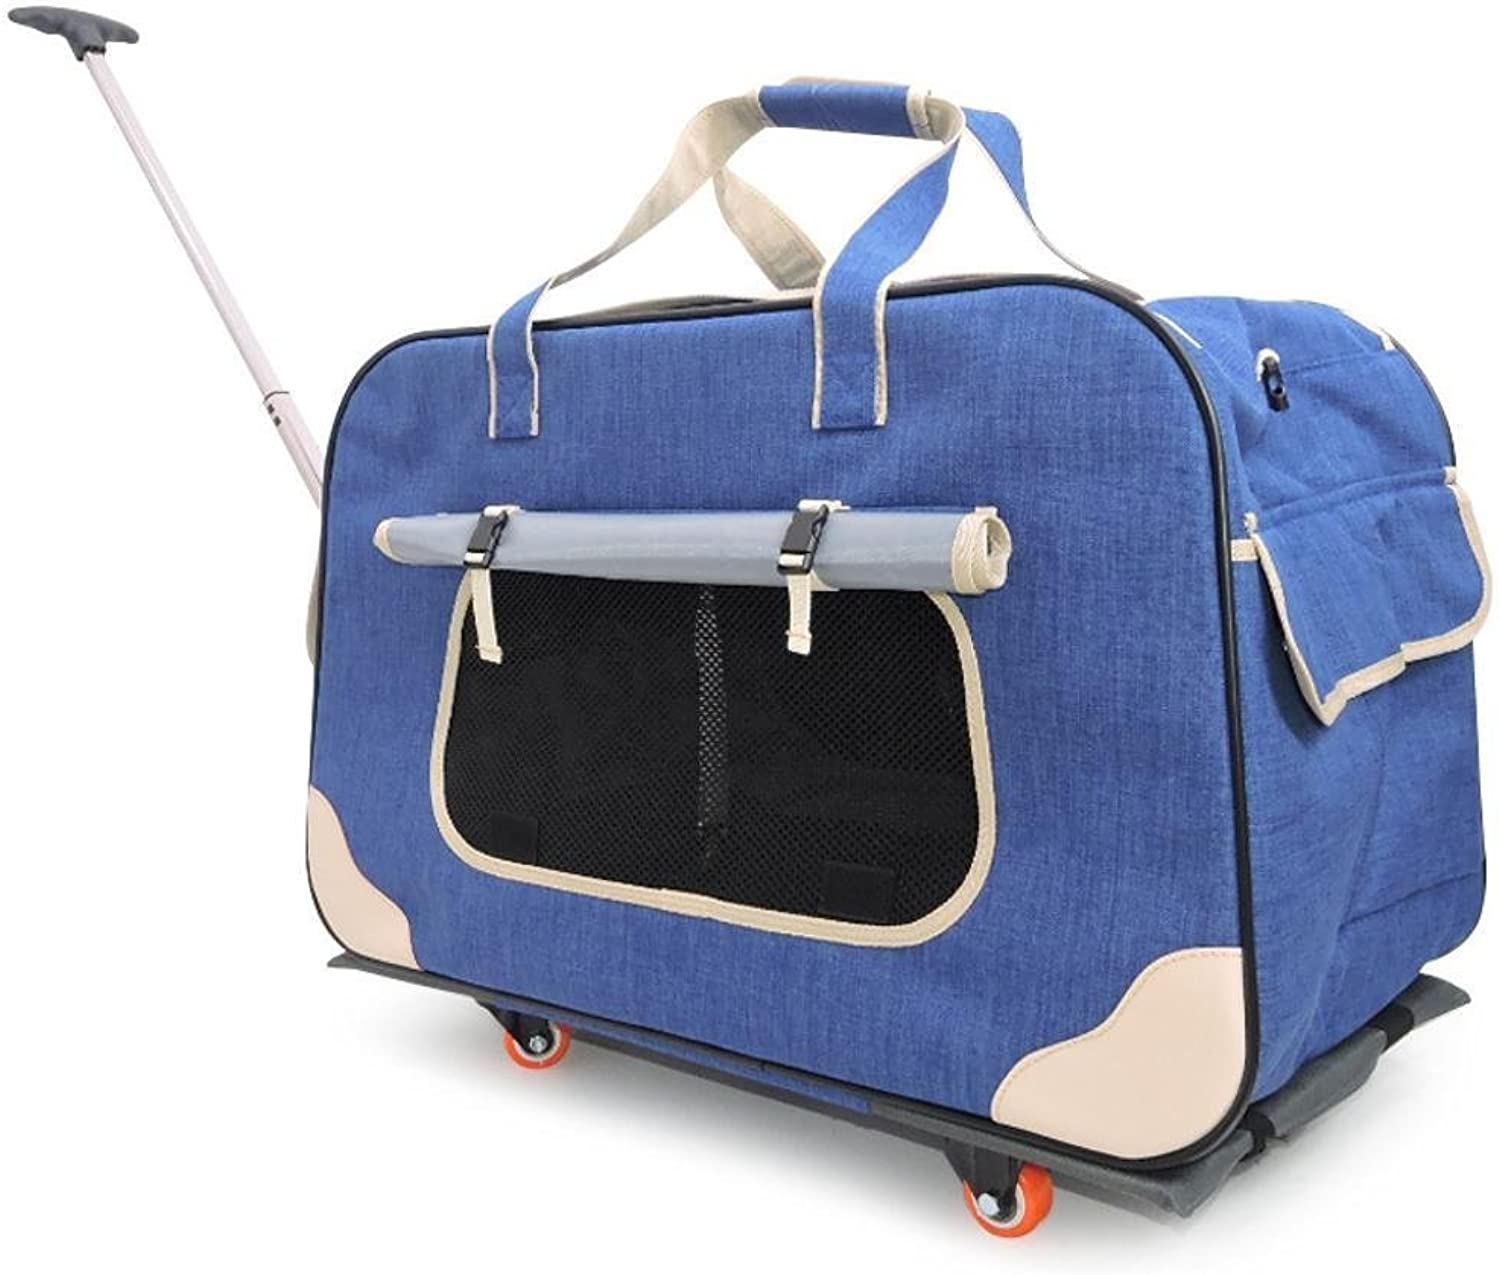 Dixinla Pet Carrier Backpack Fourwheeled suitcase bag with breathable fully enclosed